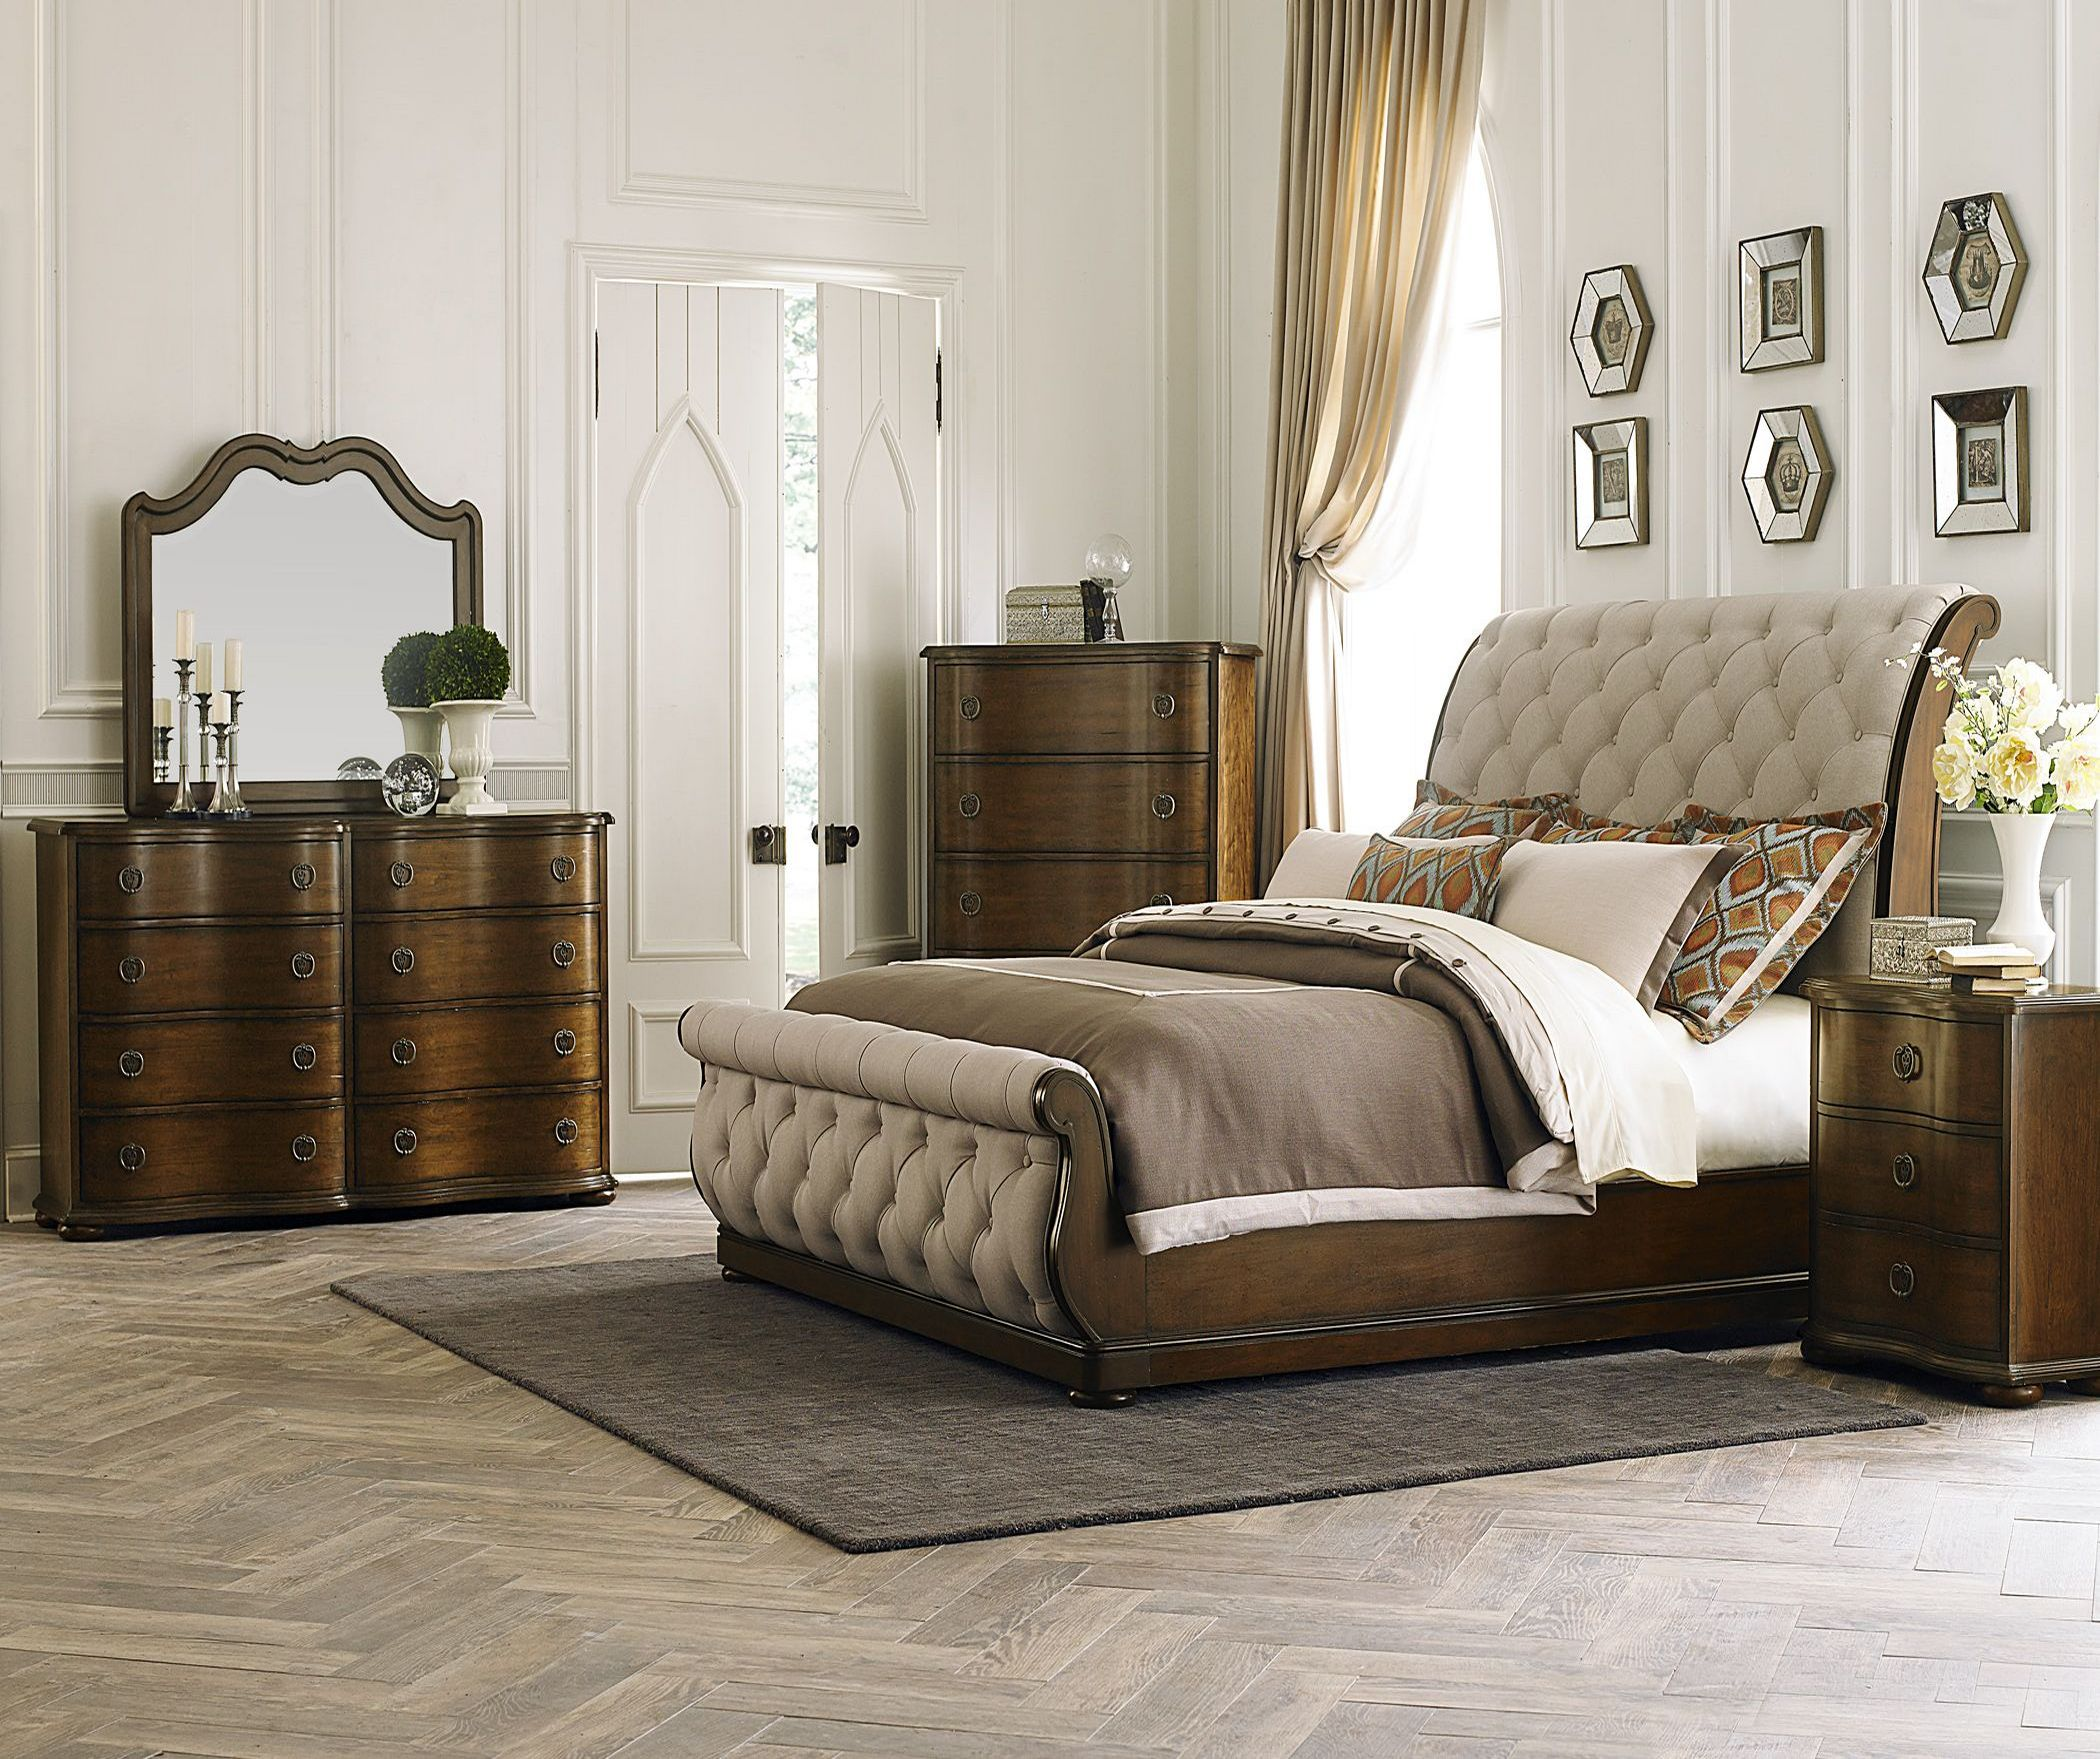 Cotswold upholstered sleigh bedroom set 1stopbedrooms - Bedroom furniture sets buy now pay later ...